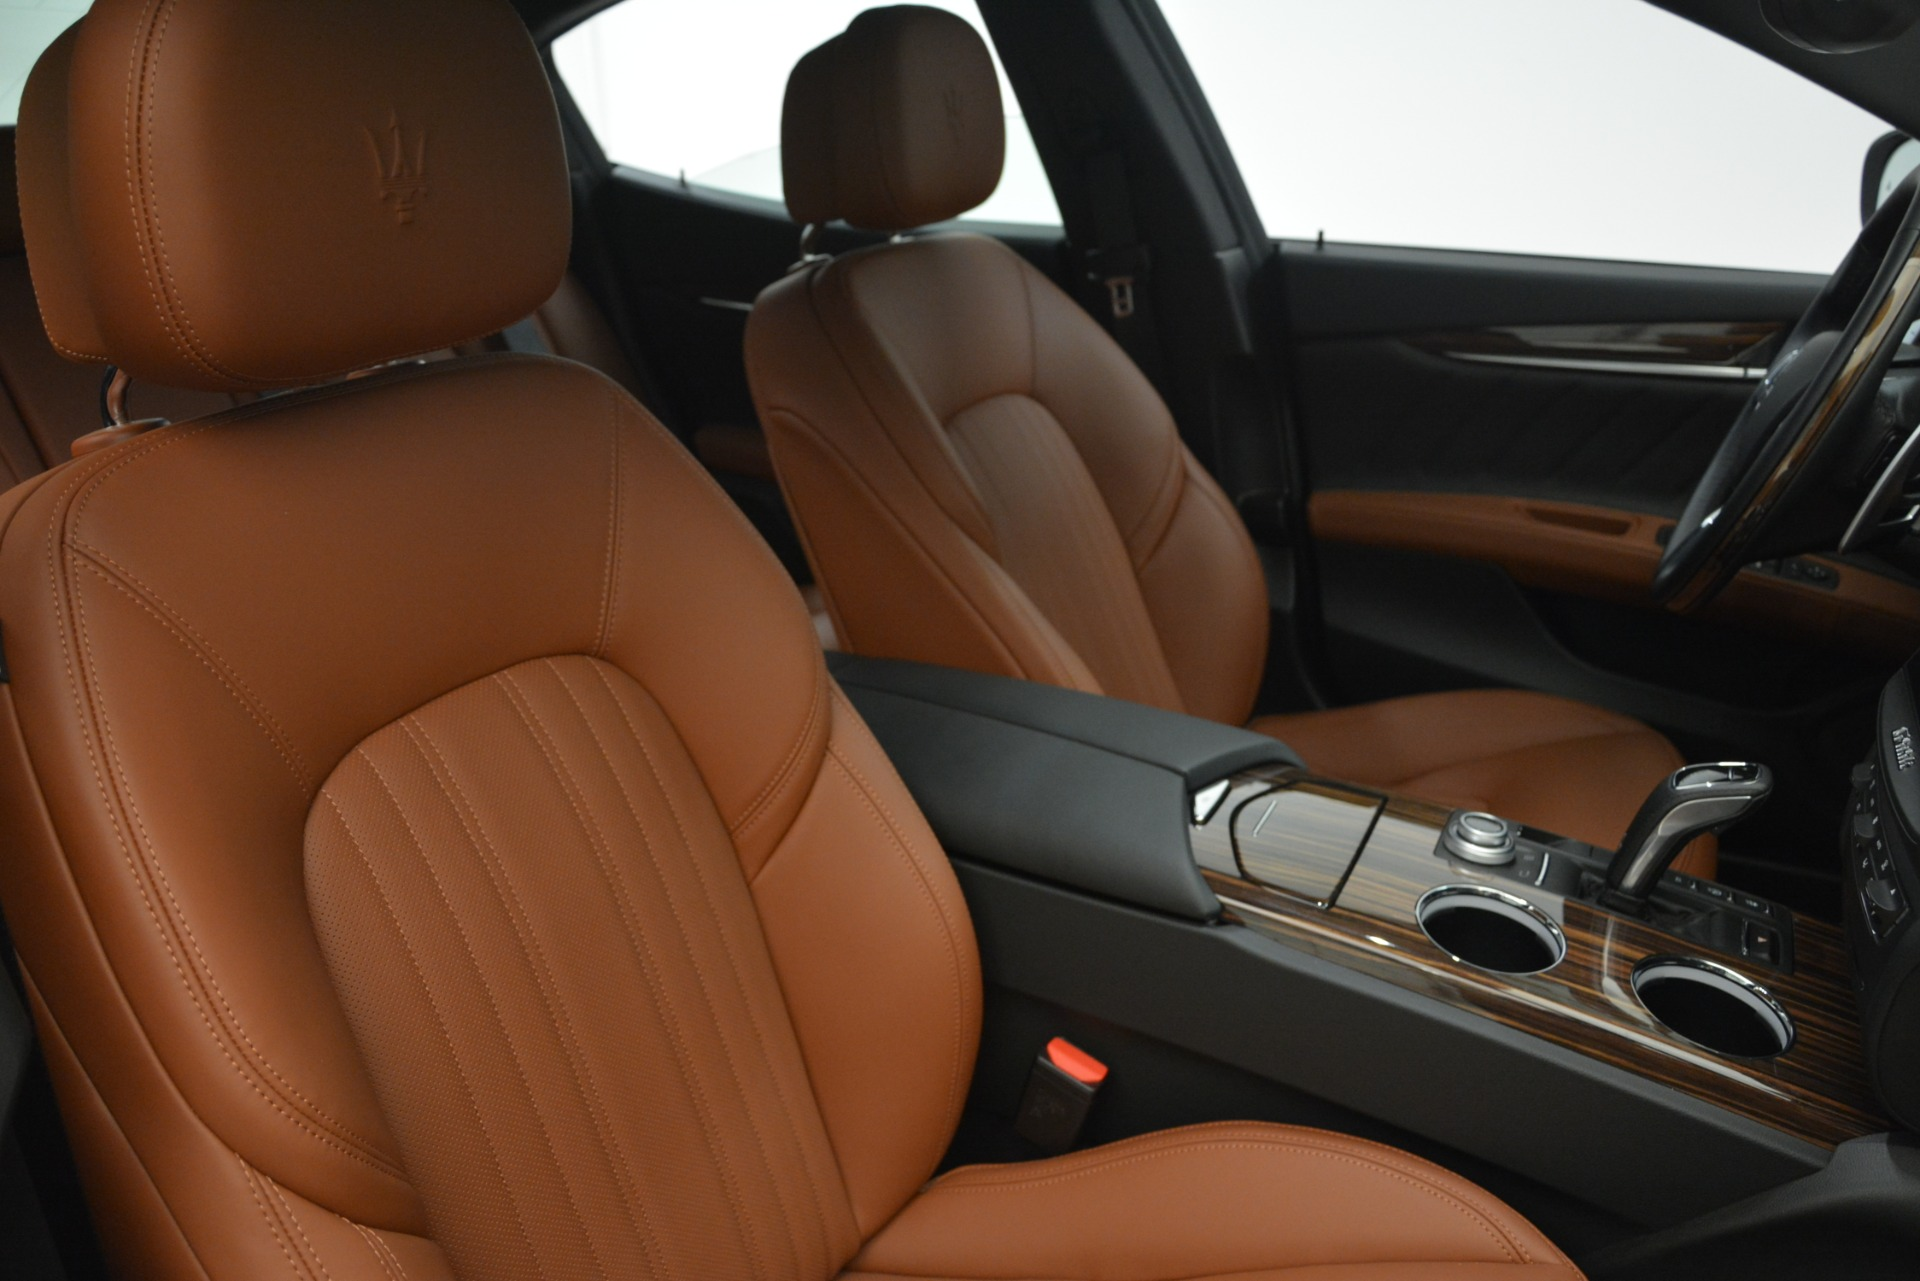 New 2019 Maserati Ghibli S Q4 GranLusso For Sale In Greenwich, CT. Alfa Romeo of Greenwich, M2222 2589_p22